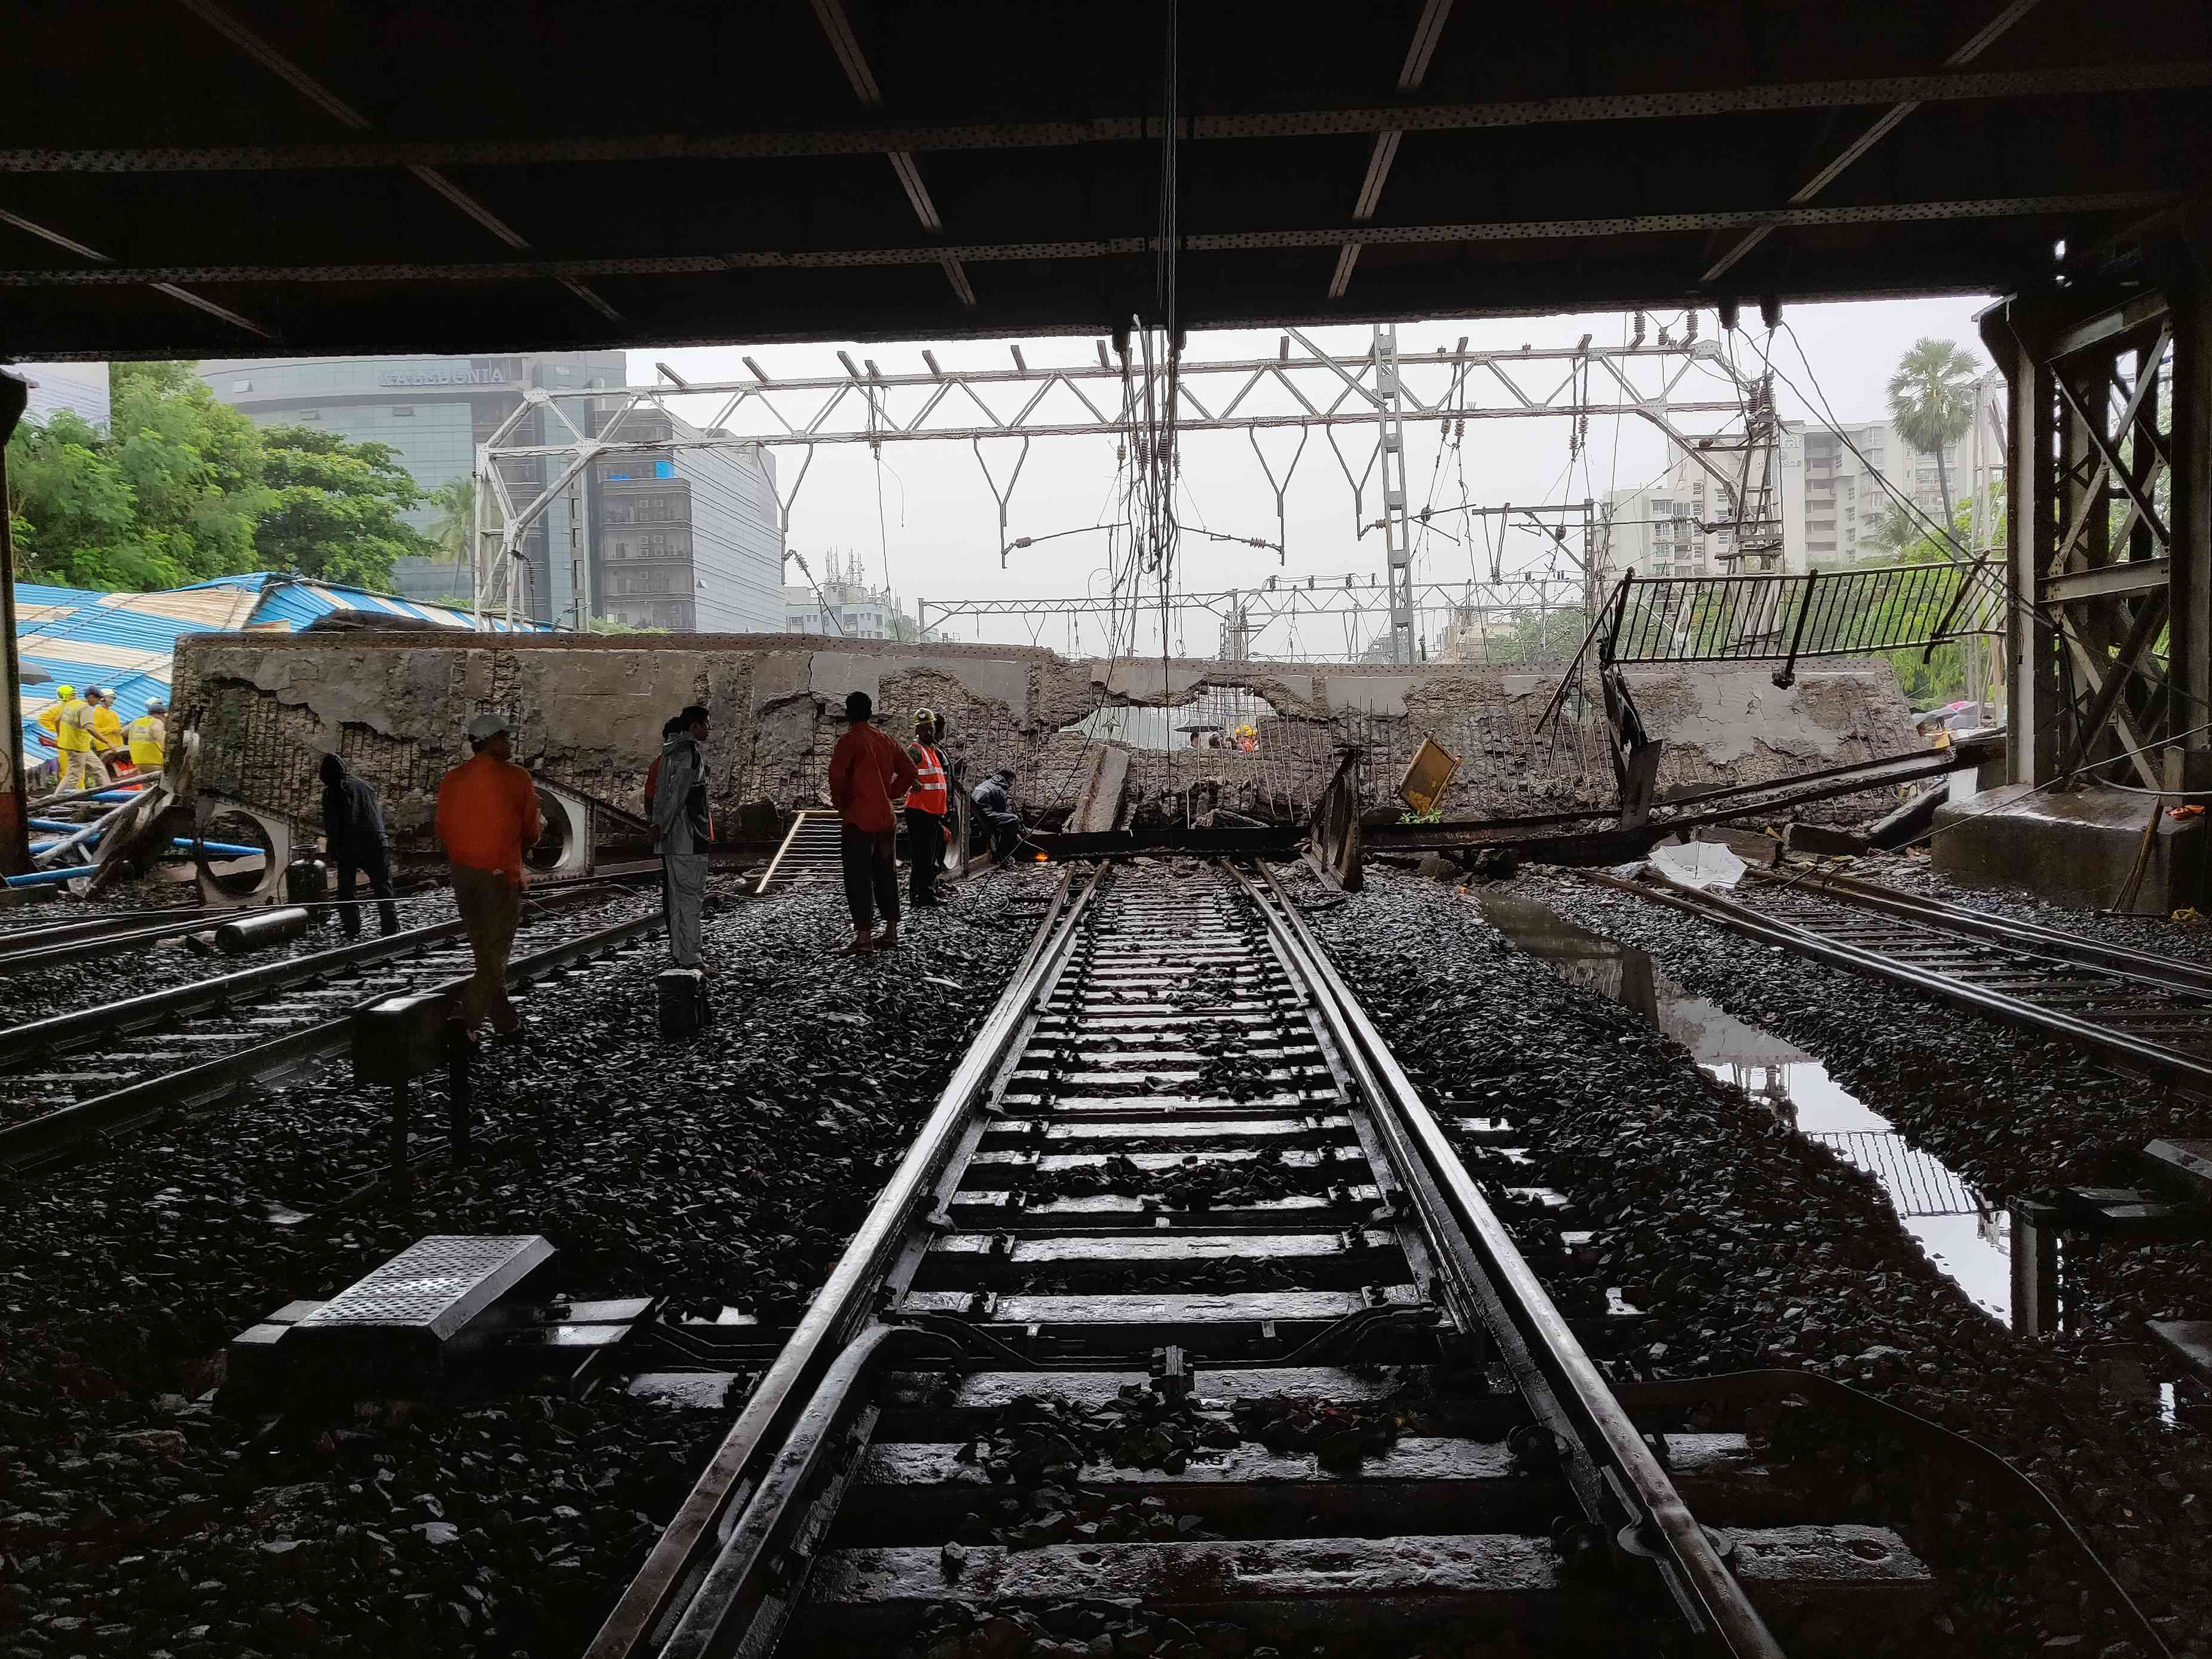 On July 3, a large section of an east-west connector bridge by Andheri suburban railway station collapsed, injuring five people. One of the women injured in the accident died four days later. (Photo credit: AFP).